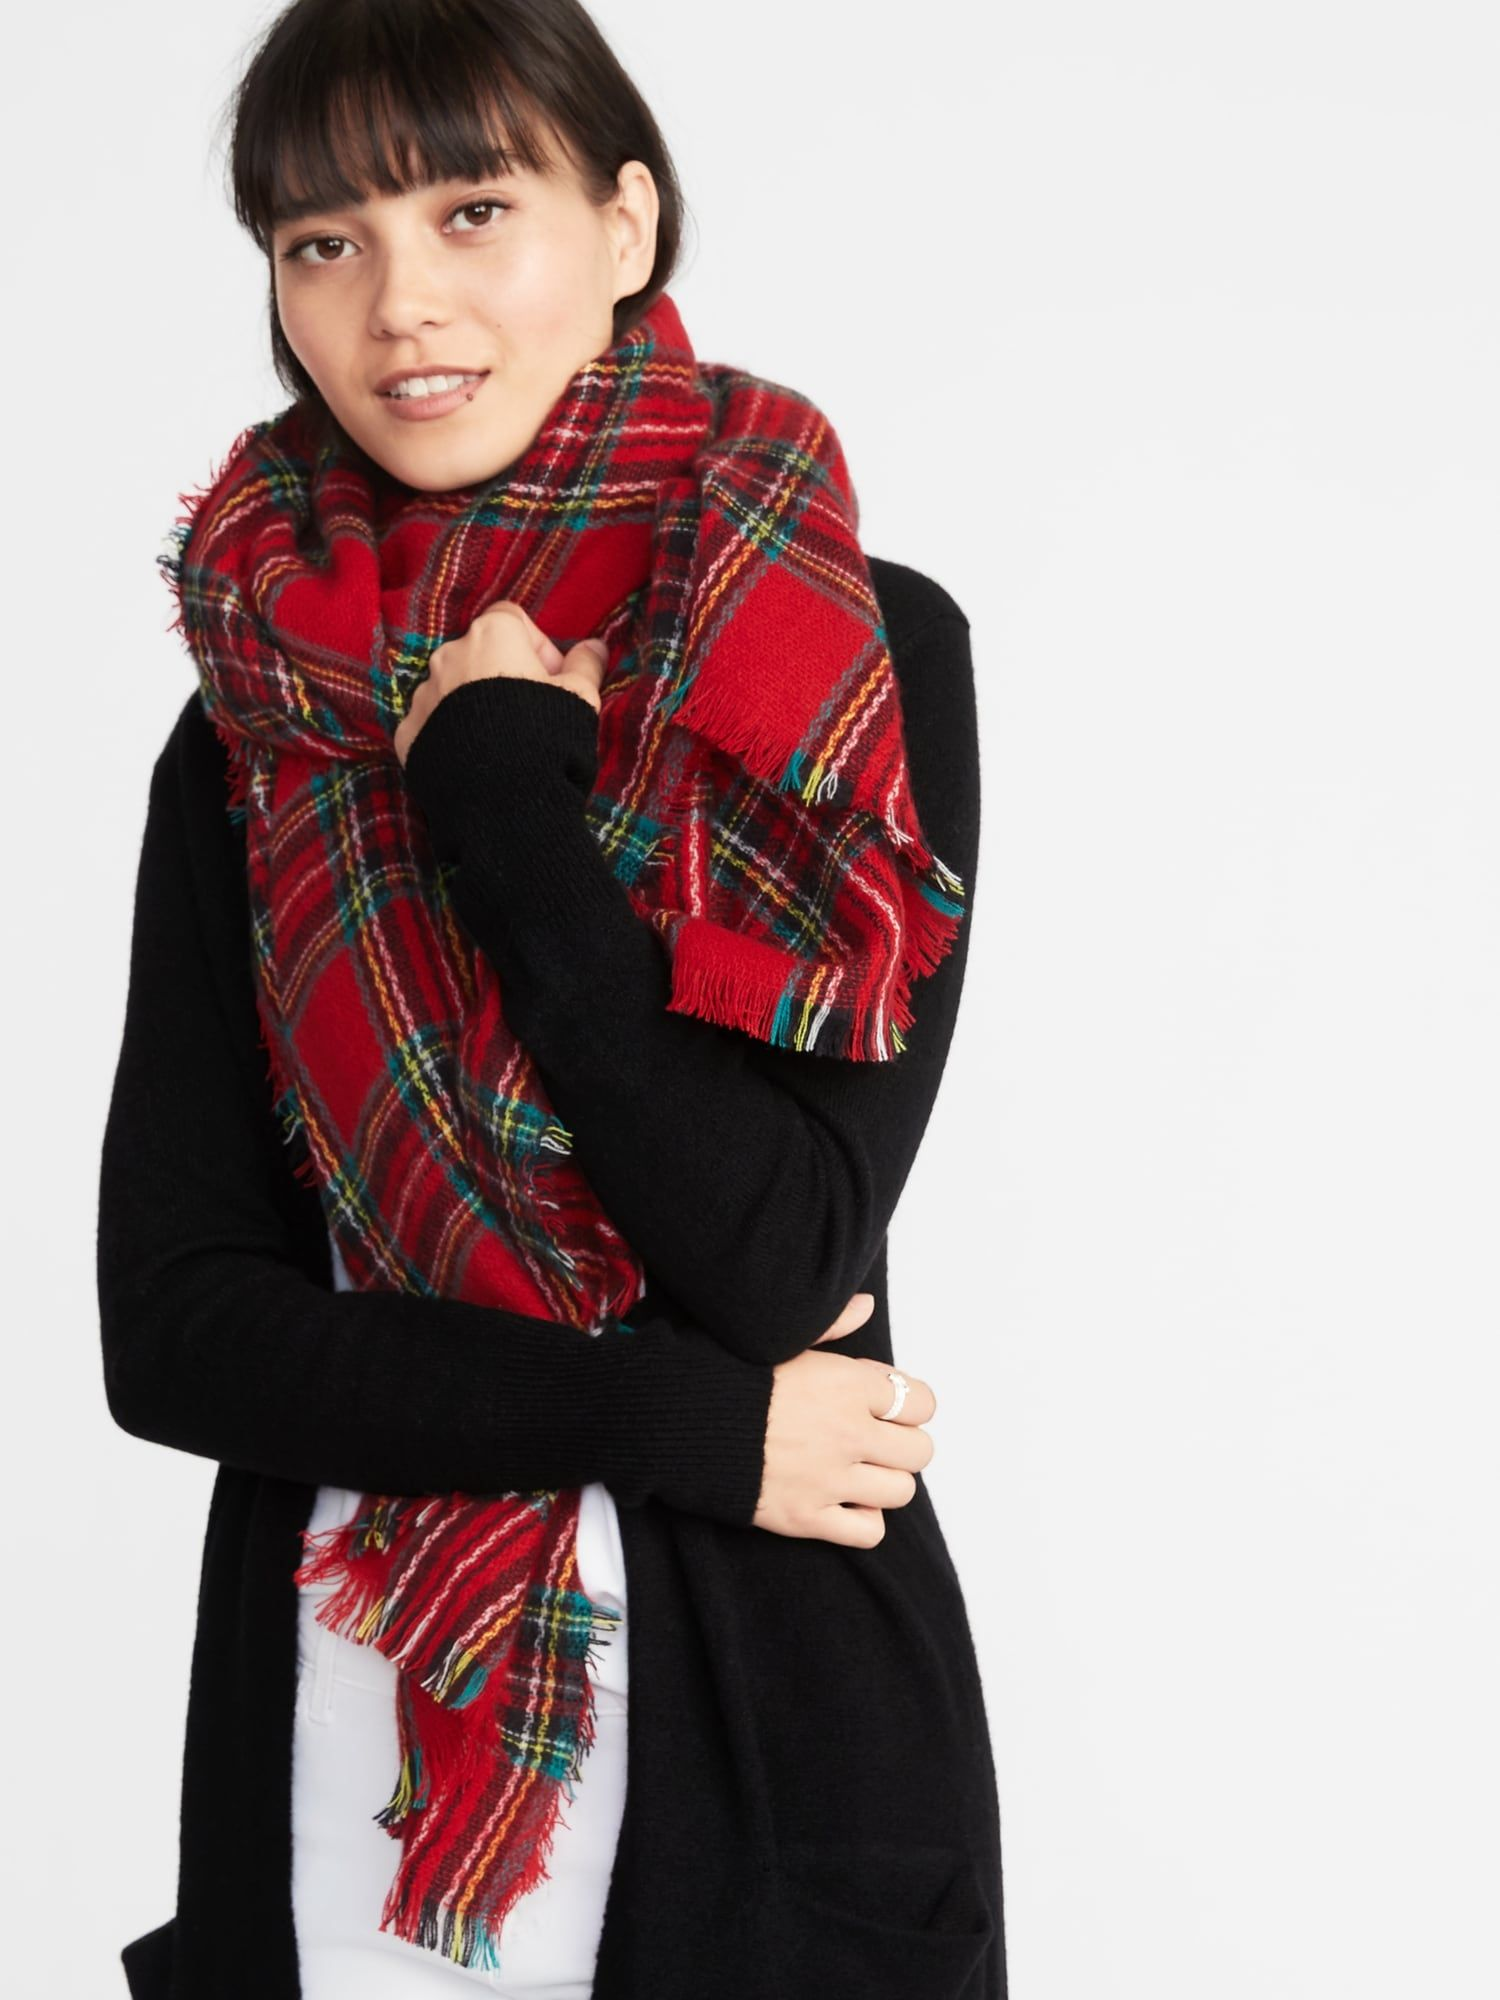 Flannel Blanket Scarf For Women Old Navy Red Plaid Scarf